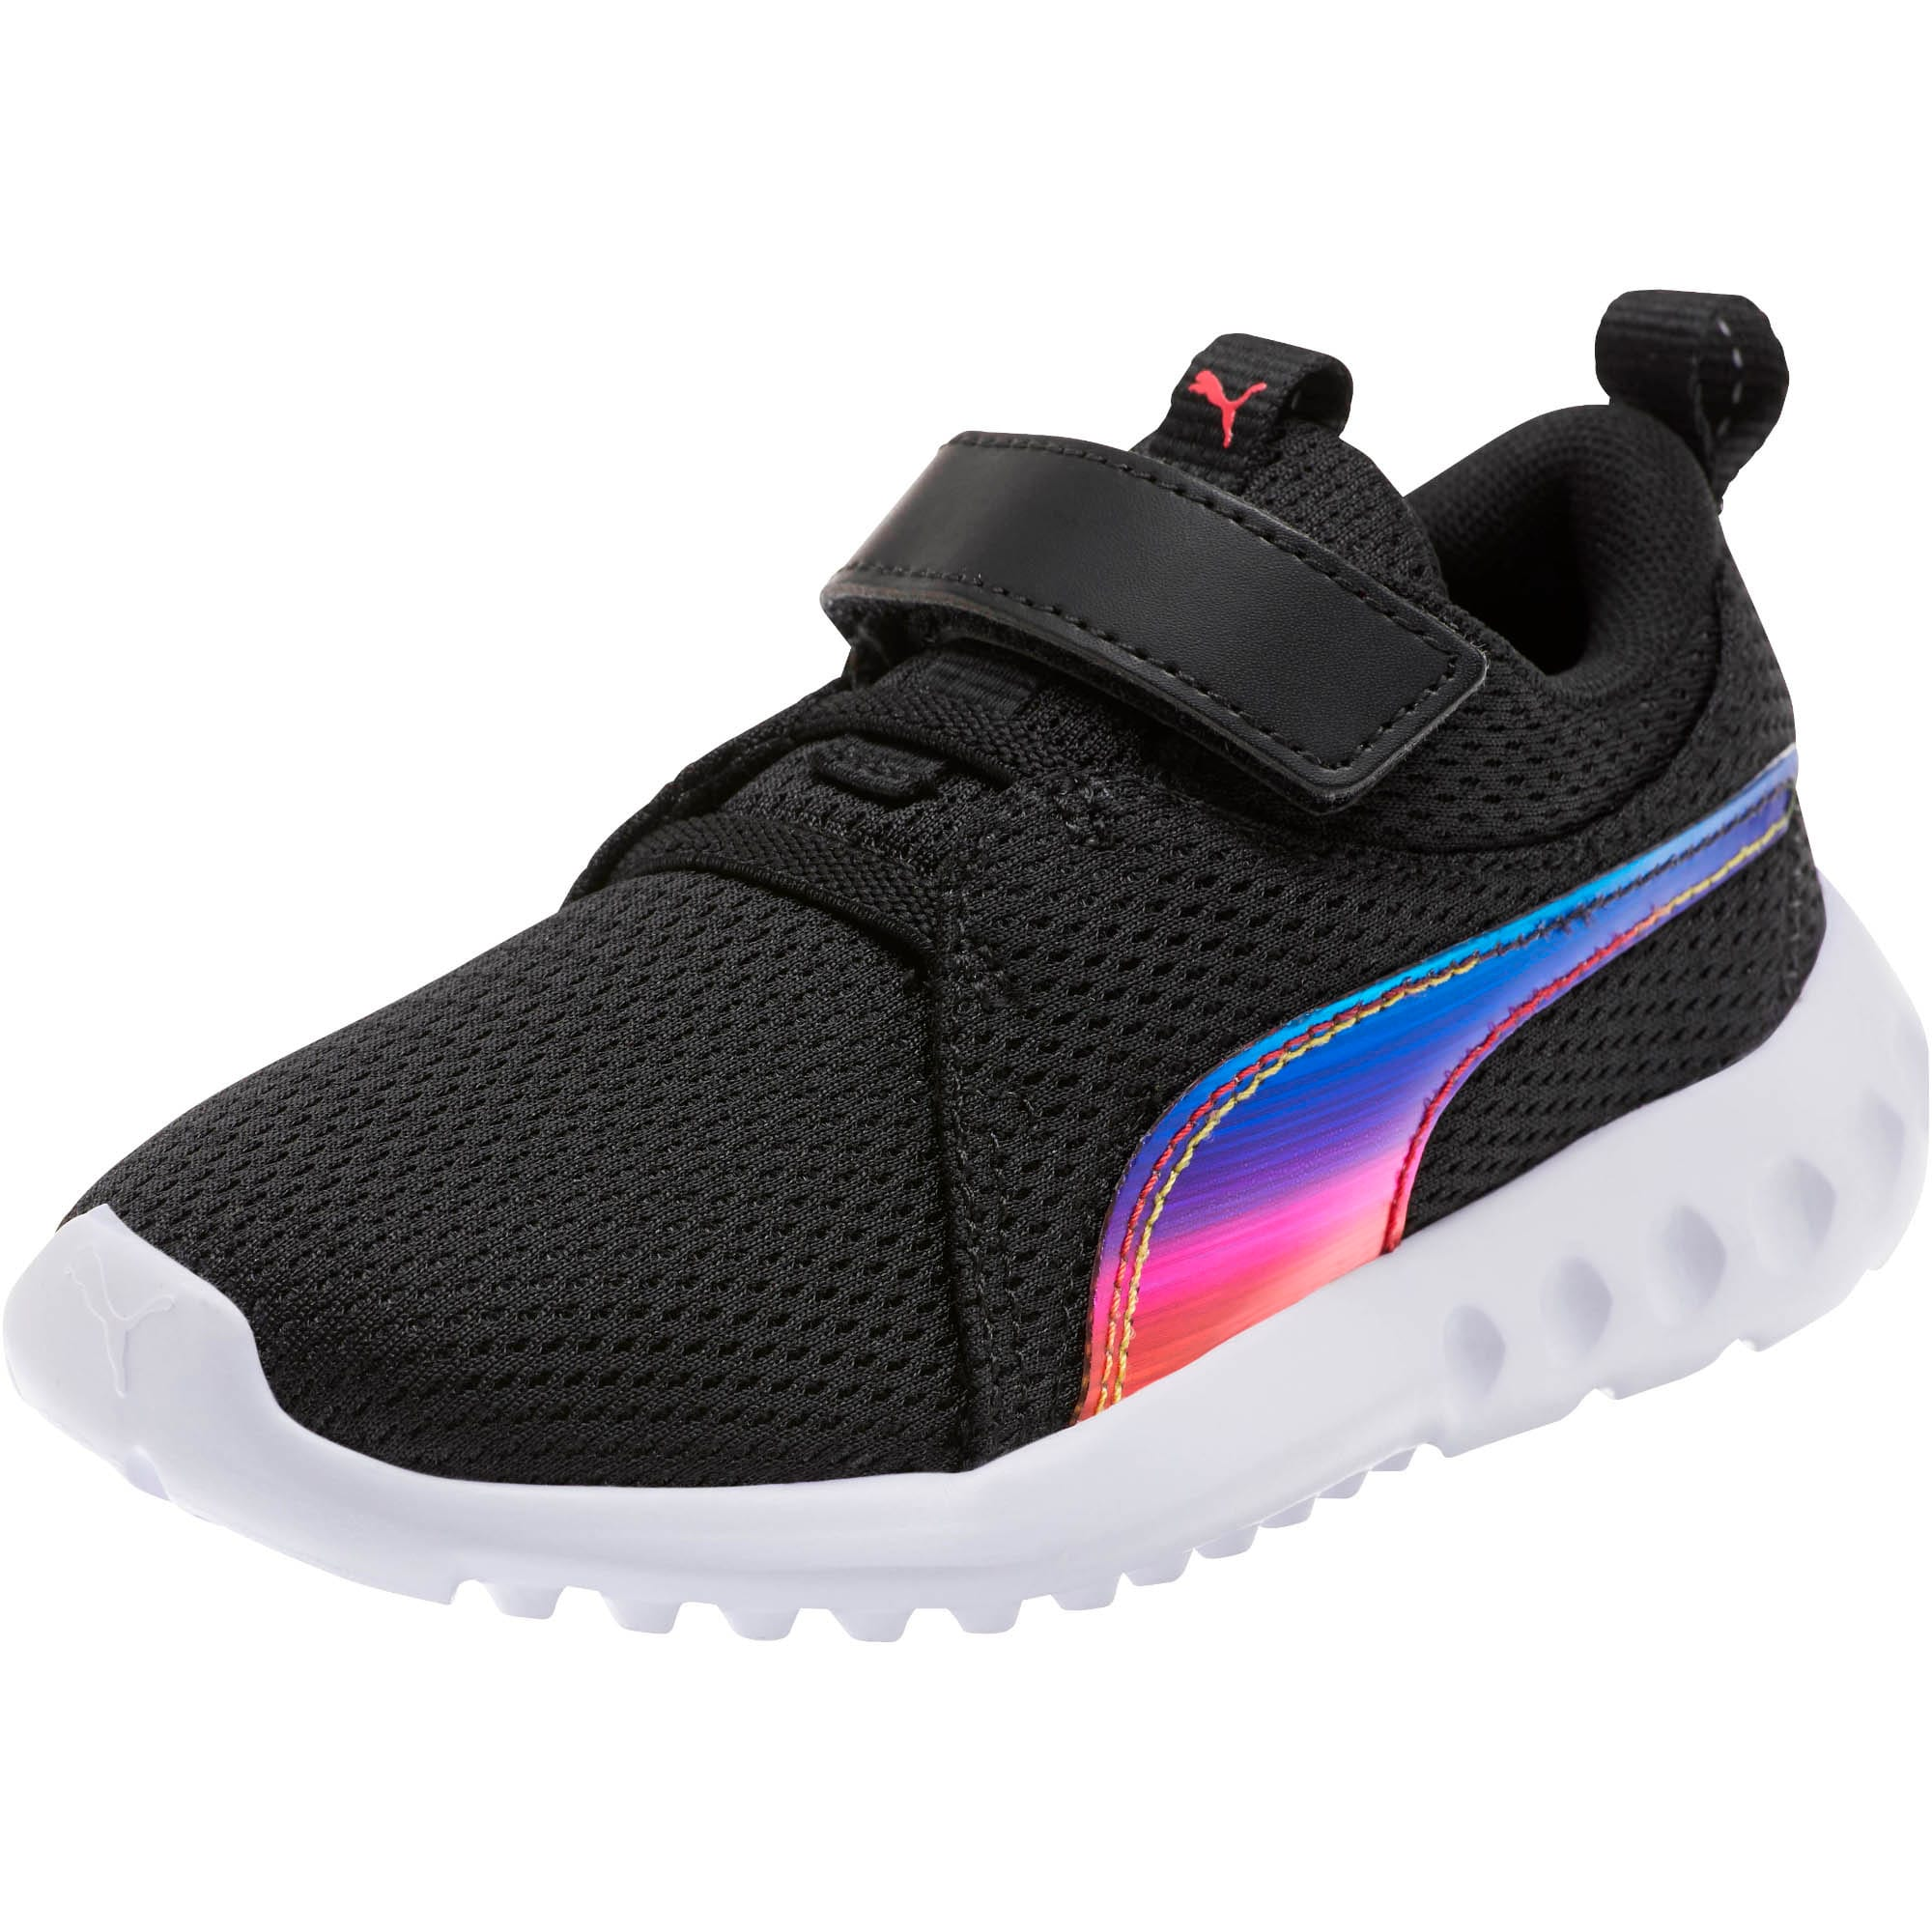 Thumbnail 1 of Carson 2 Iridescent Little Kids' Shoes, Puma Black-Puma White, medium